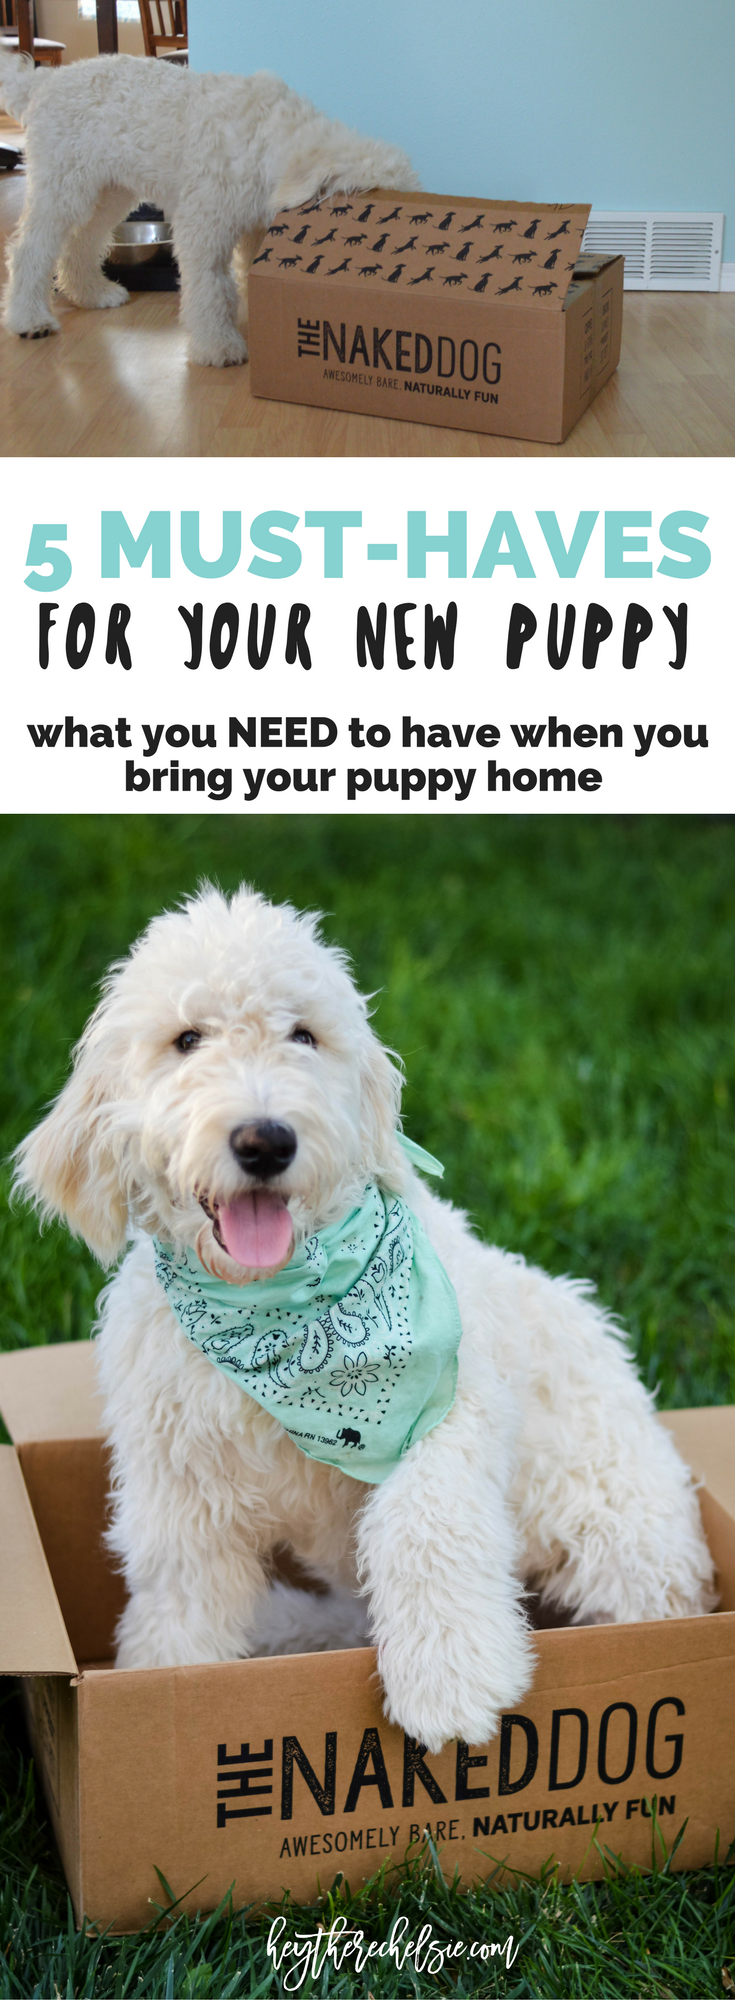 5 Must-Haves for your New Puppy featuring The Naked Dog Box // Hey There, Chelsie